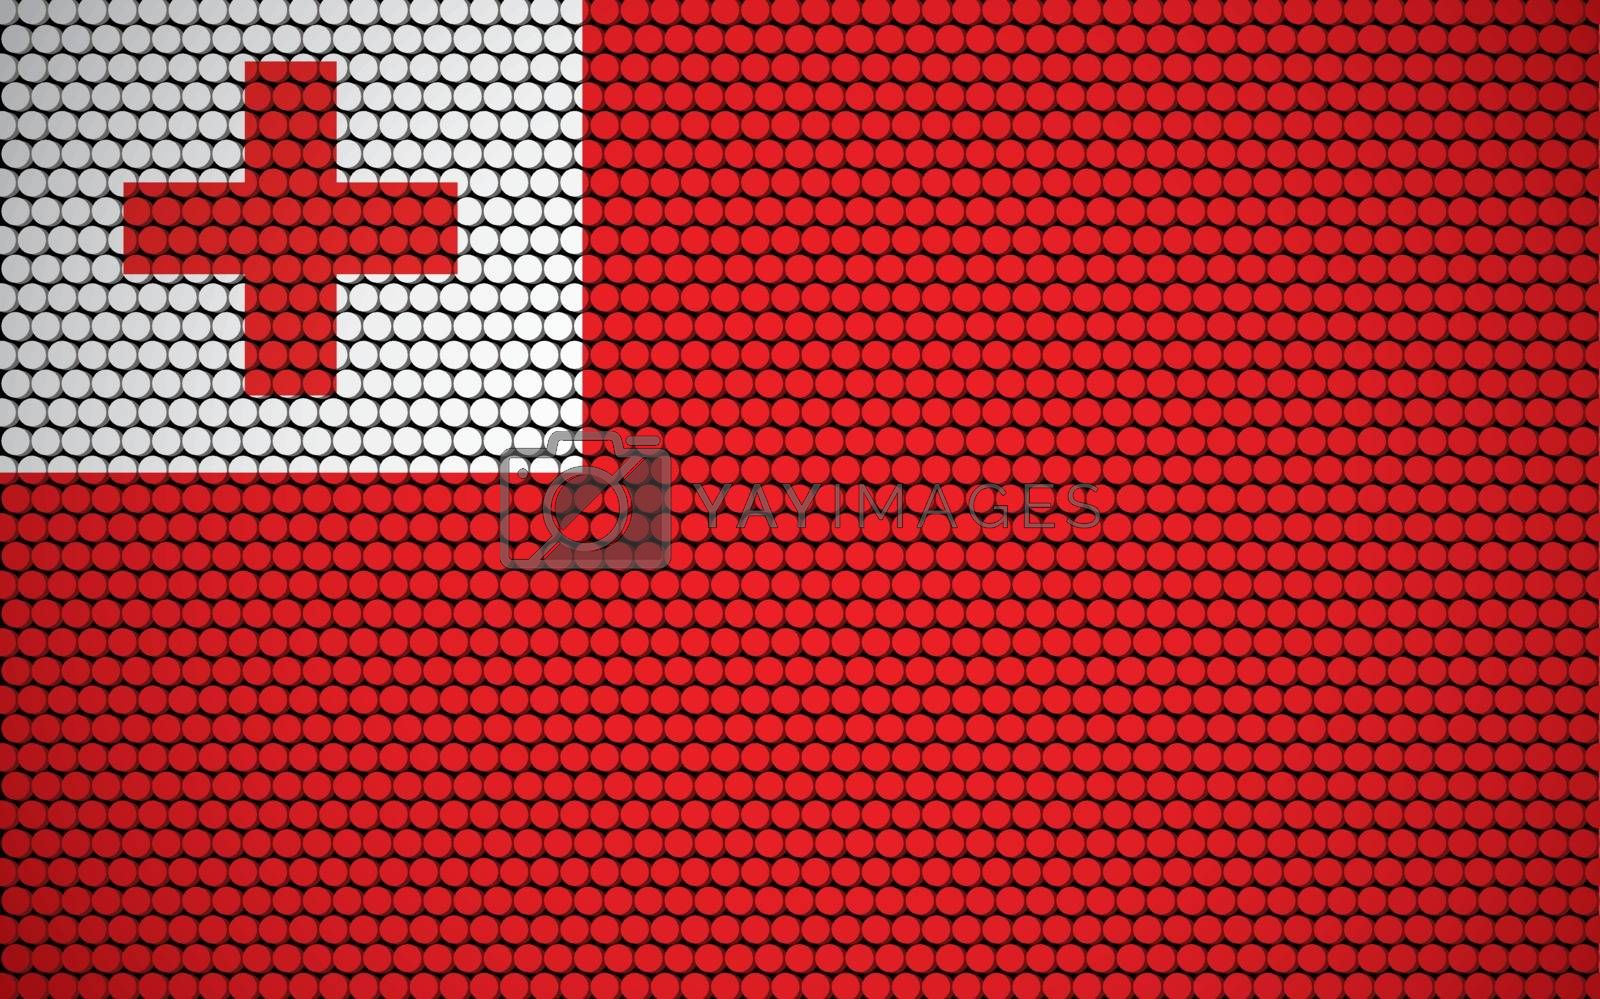 Abstract flag of Tonga made of circles. Tongan flag designed with colored dots giving it a modern and futuristic abstract look.